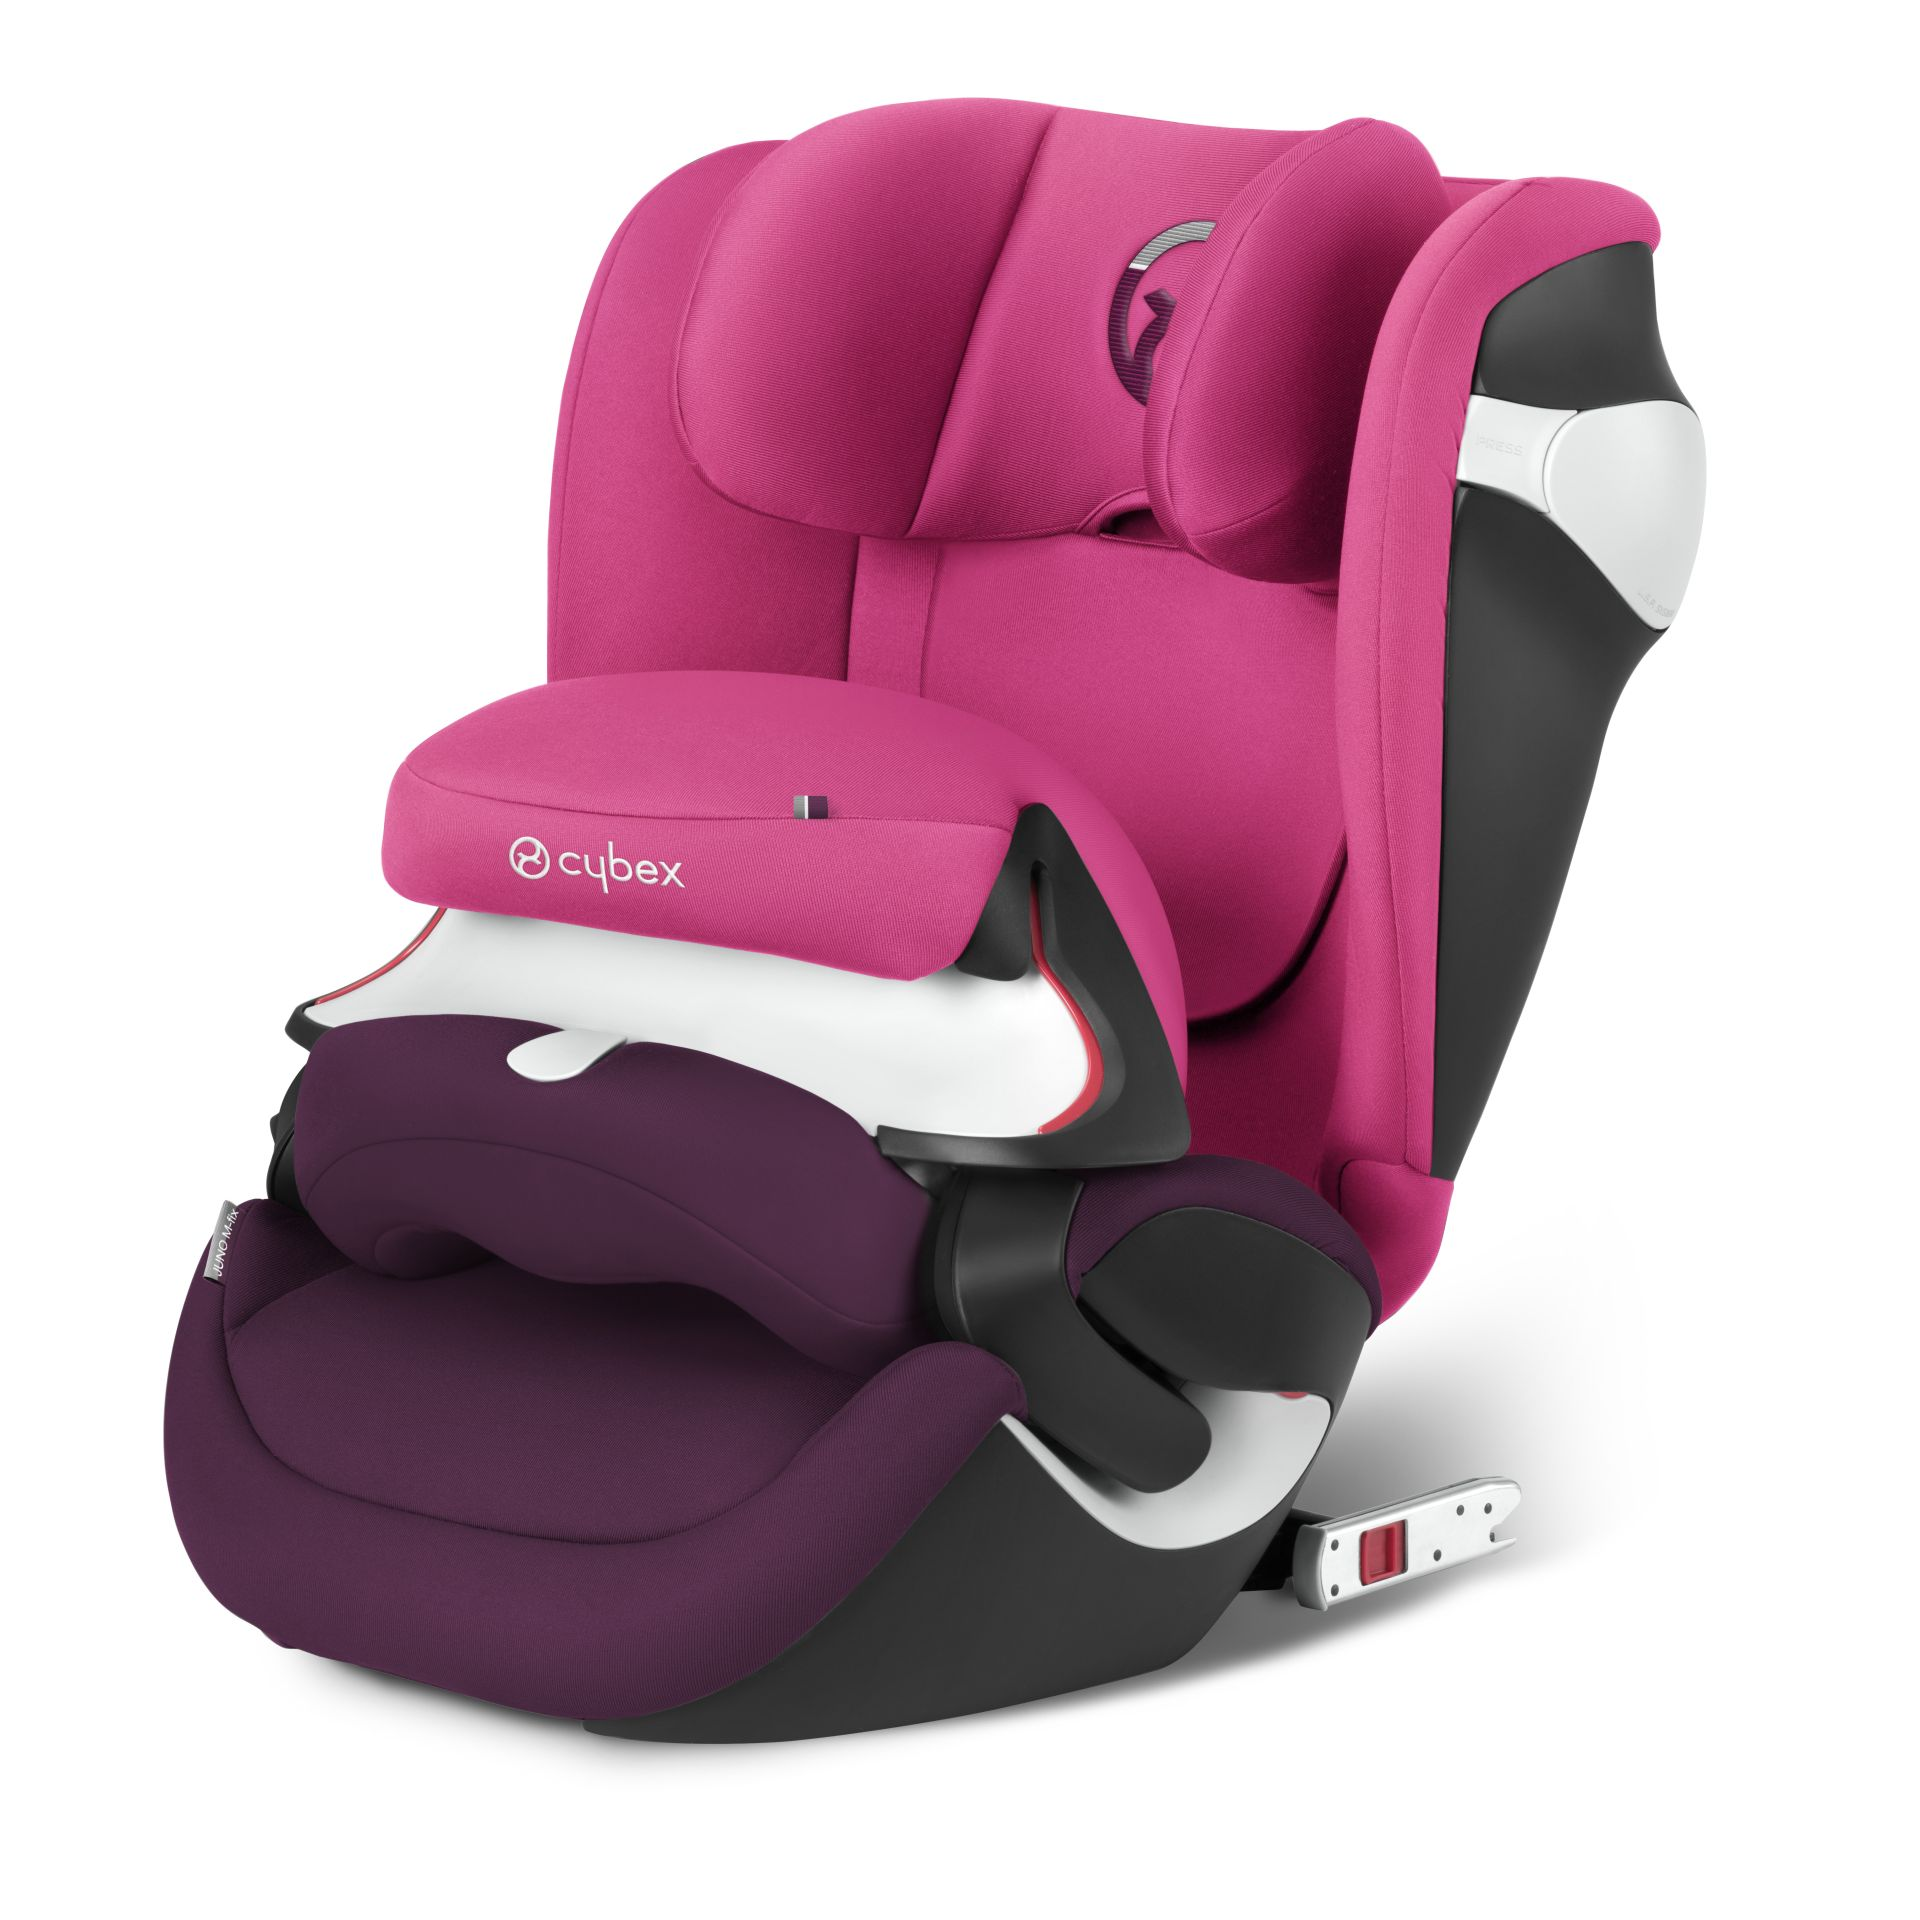 cybex car seat juno m fix 2017 mystic pink purple buy. Black Bedroom Furniture Sets. Home Design Ideas